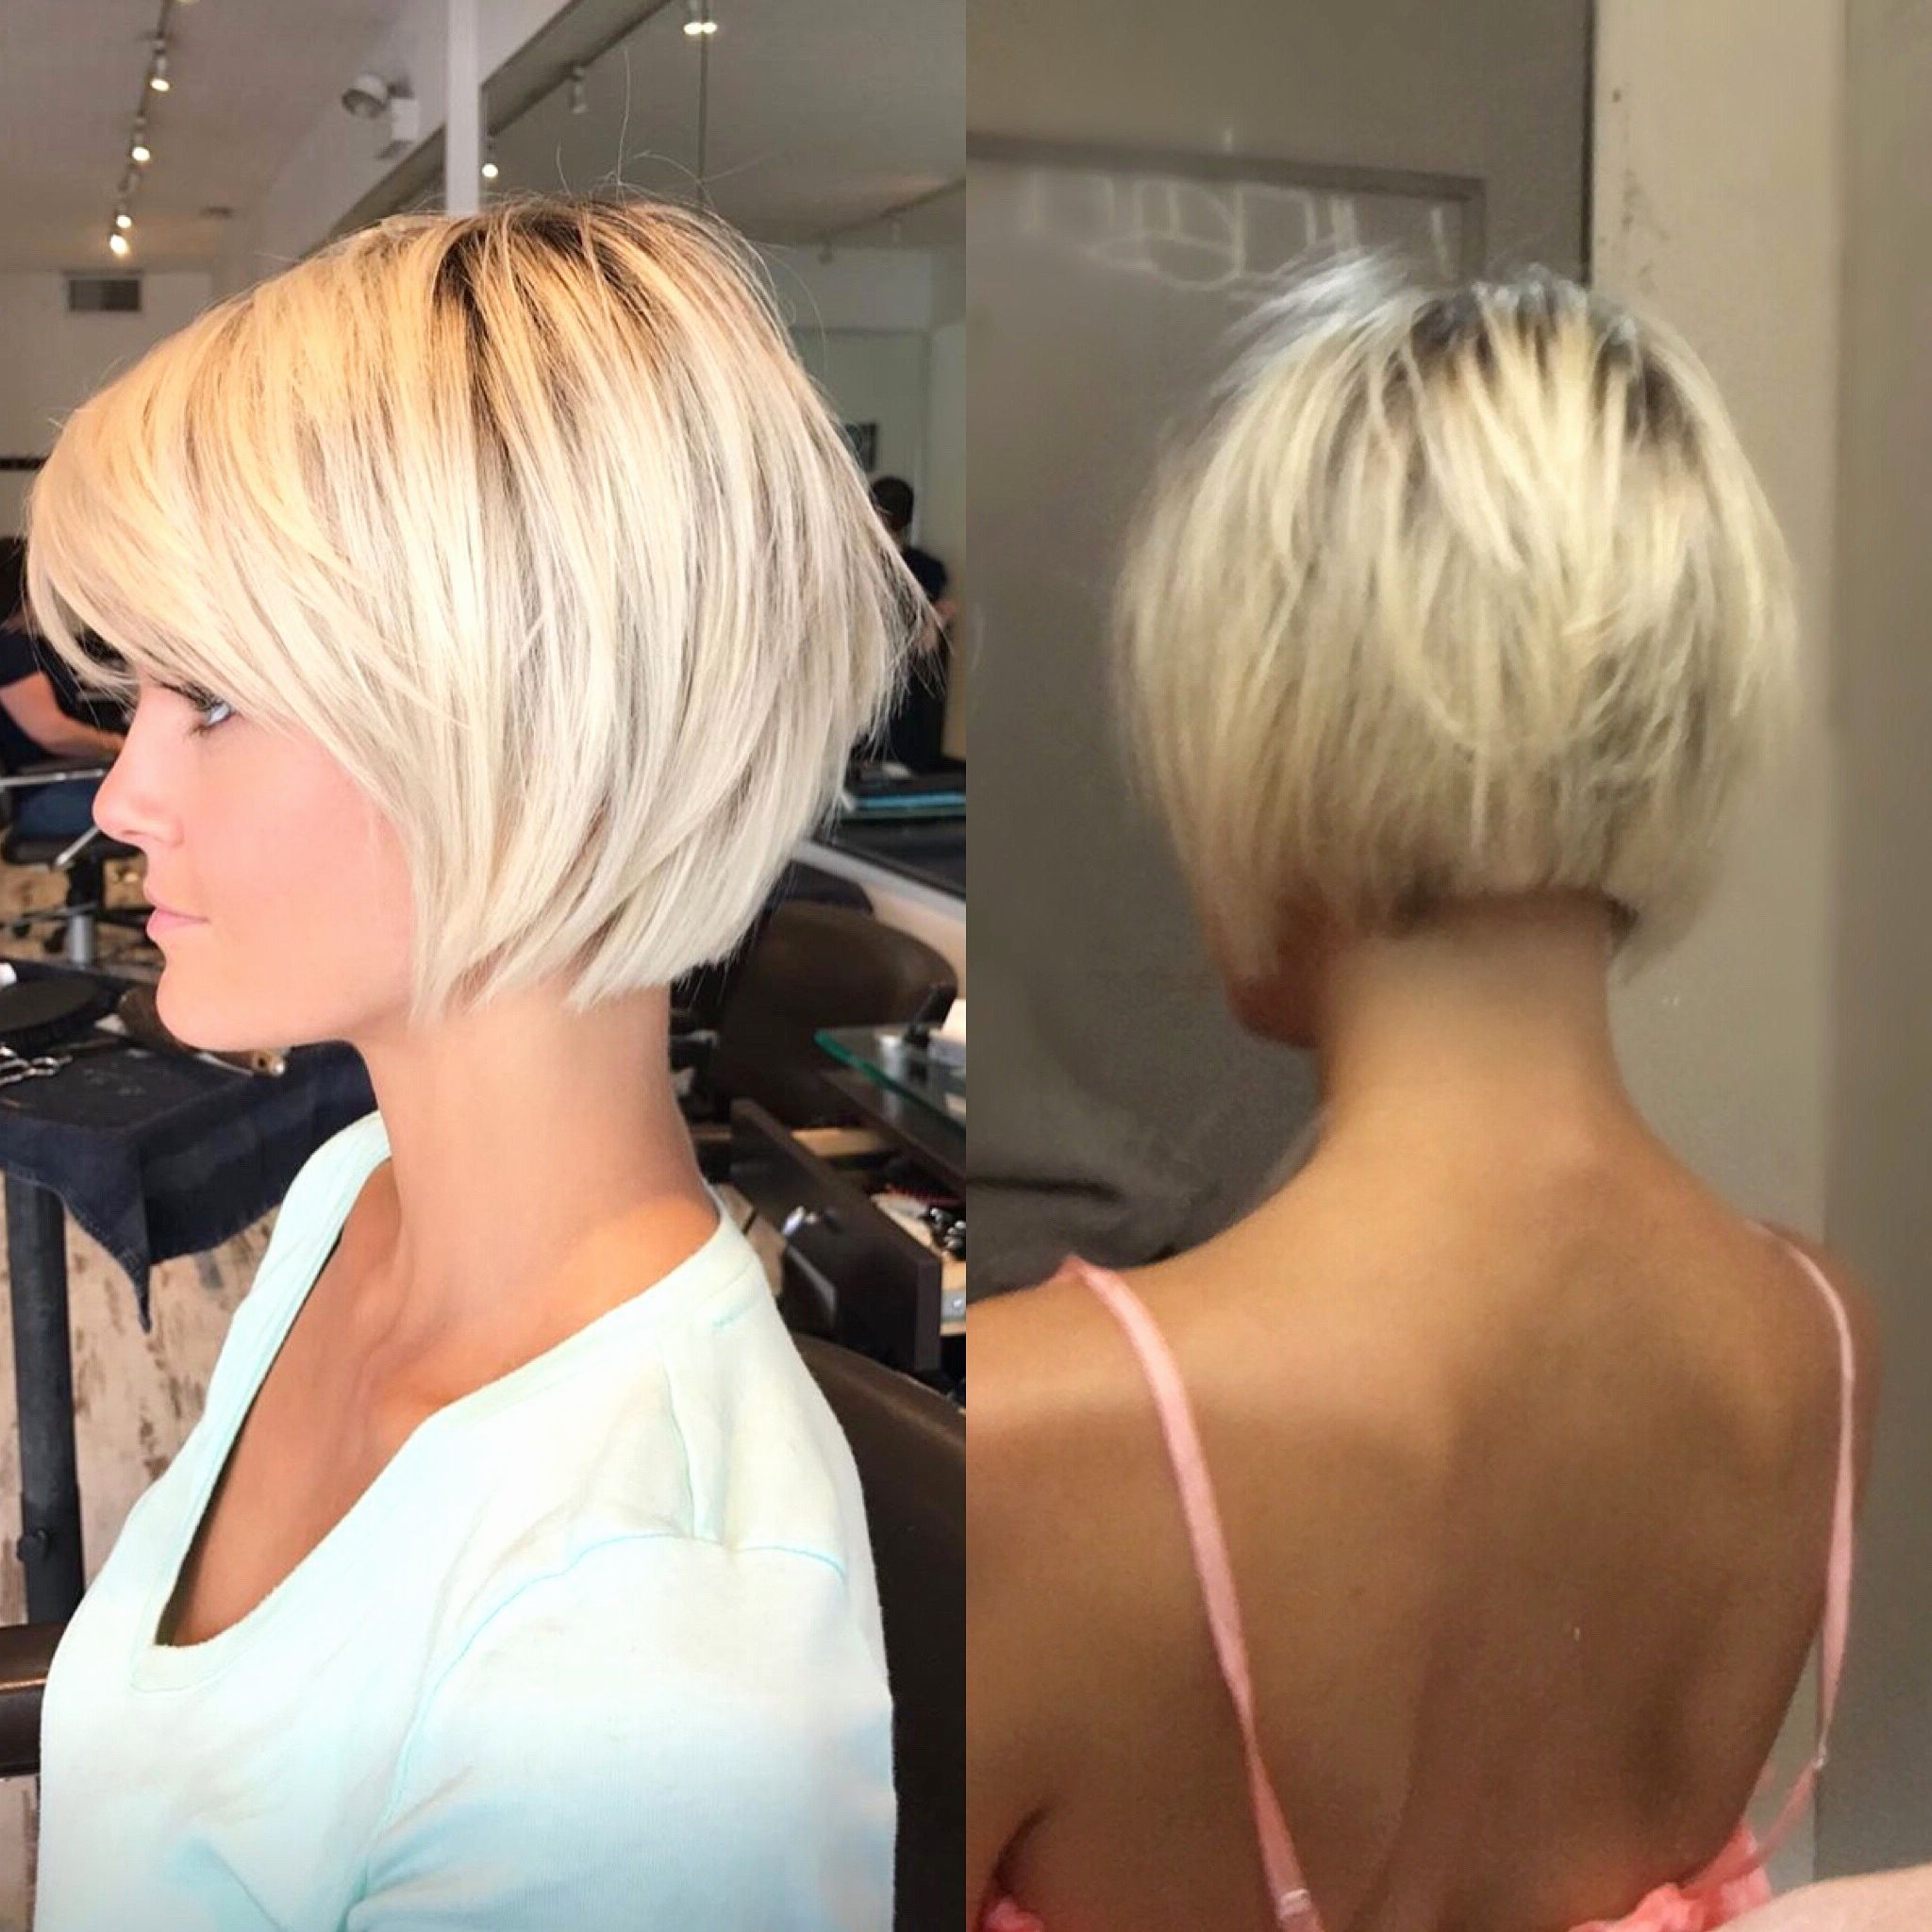 View Photos Of Posh Short Hairstyles Showing 4 Of 25 Photos